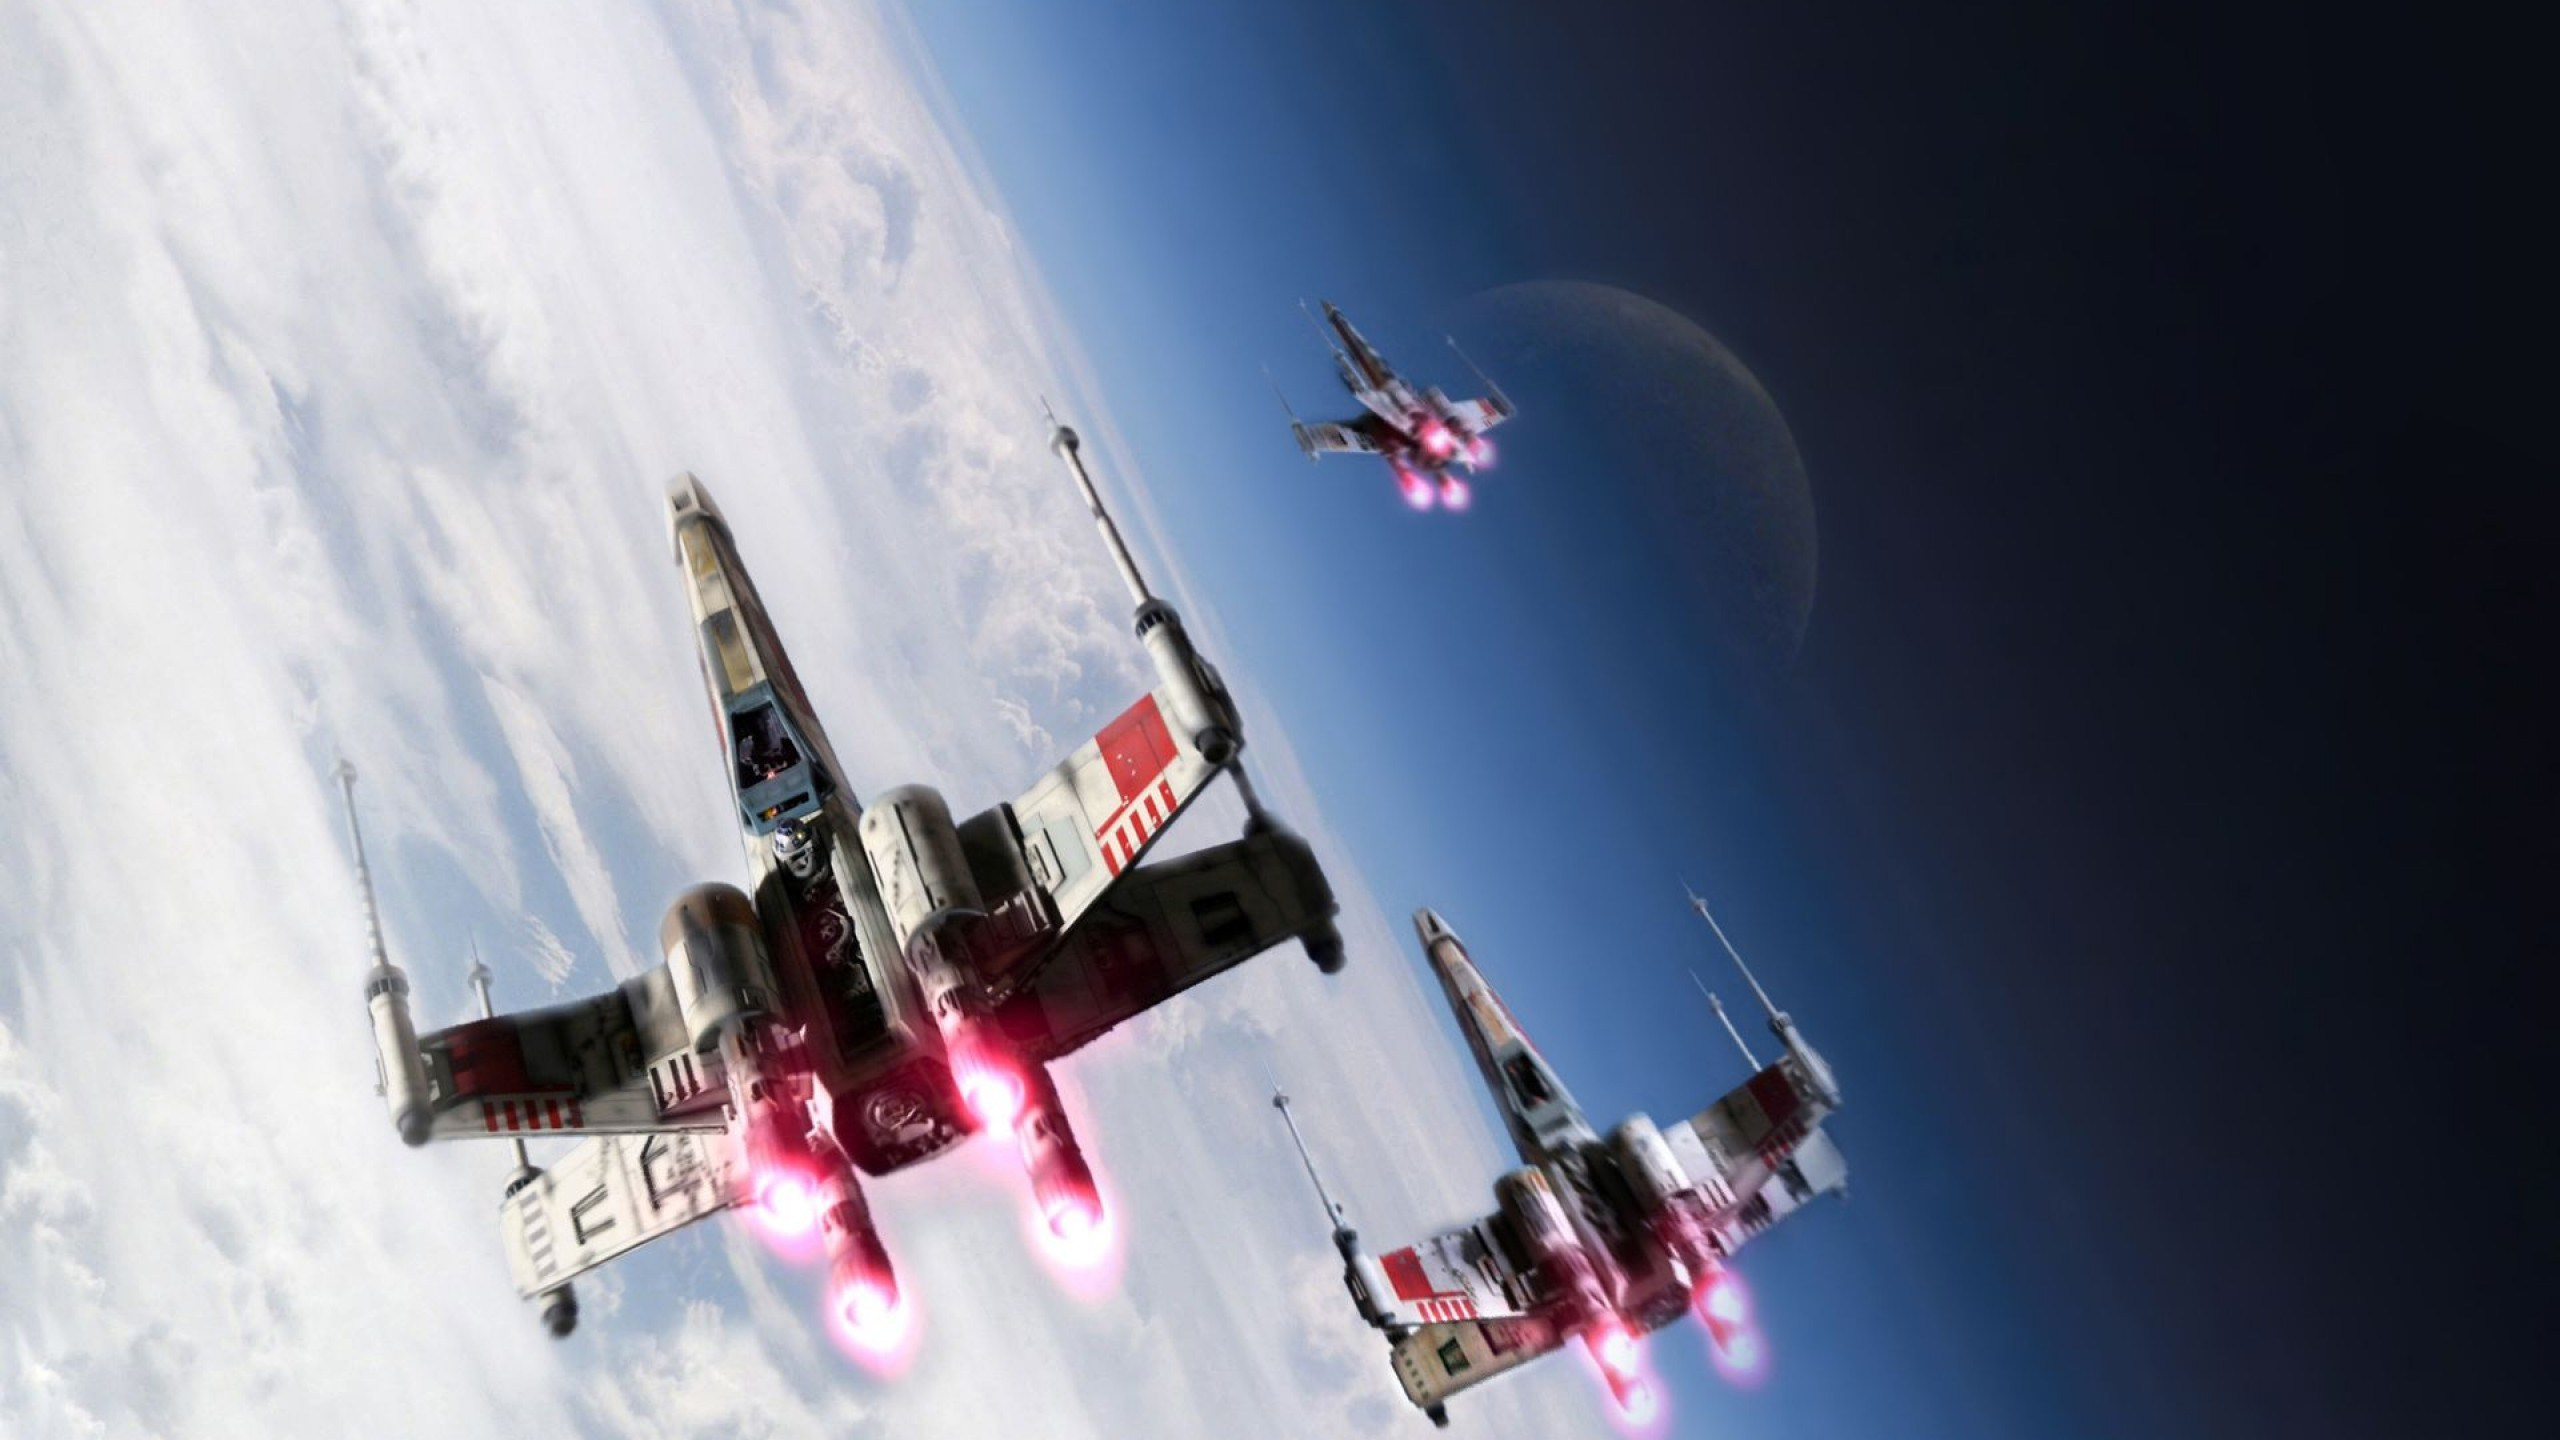 Star Wars X-wing Starfighter Over Planet Hoth Wallpaper - X Wing Fighter , HD Wallpaper & Backgrounds